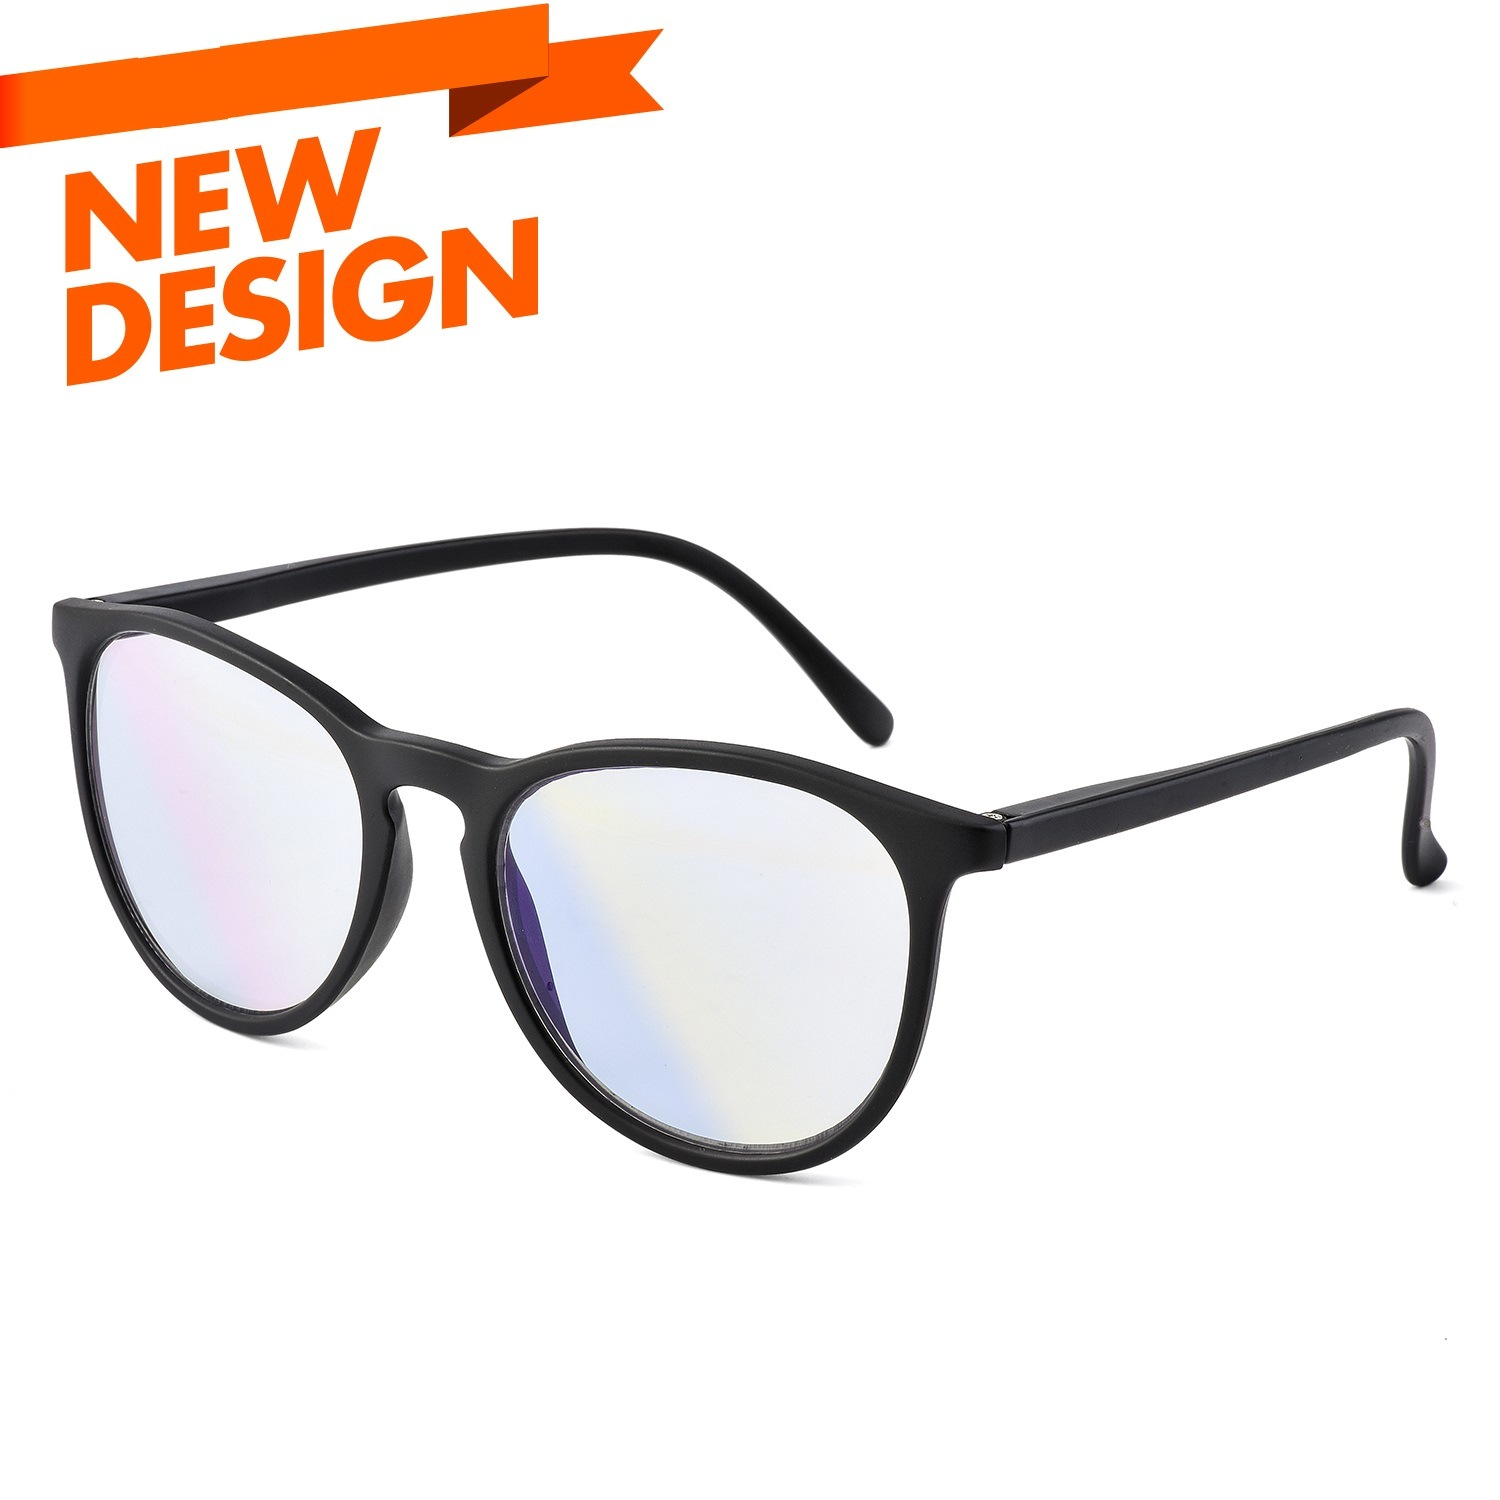 Safeyear Anti Blue Light Glasses For Computer Use China Blue Light Glasses And Anti Blue Light Glasses Price Made In China Com